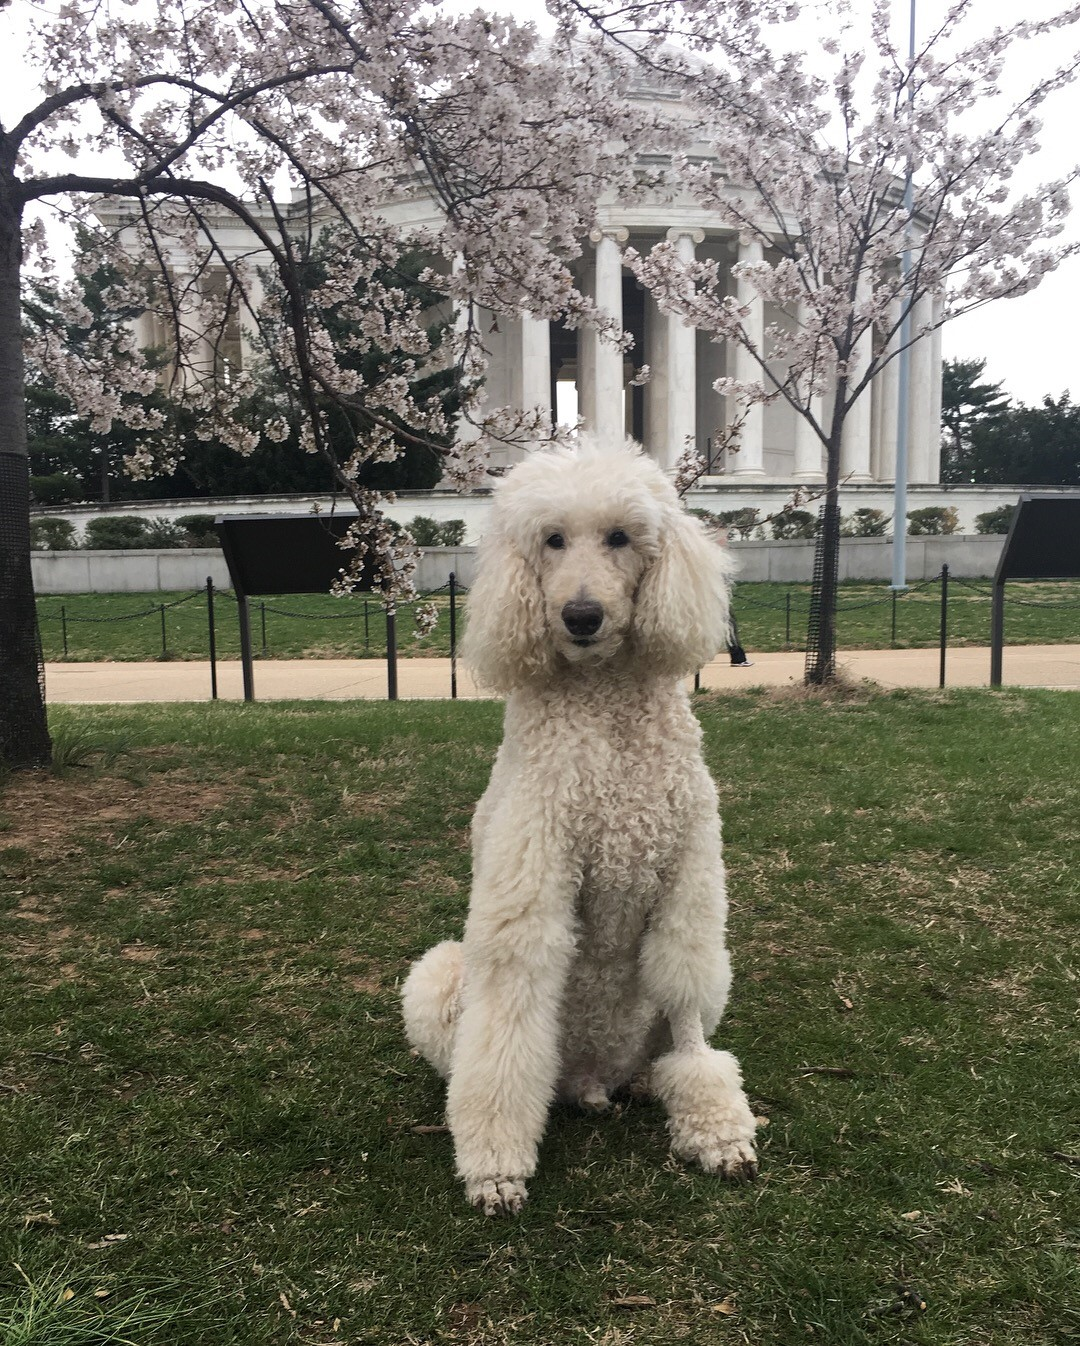 In honor of National Pet Day (which is basically like Christmas around here!) we checked in on a few of our favorite Instagram stars to see what they've been up to lately, and we noticed many of them had paid a visit to D.C.'s beloved blossoms. So for this week's special RUFFined Spotlight, we give you some adorable four-legged admirers of the cherry blossoms! (Image: via IG user @gentlemanjaxdc / instagram.com/gentlemanjaxdc/)